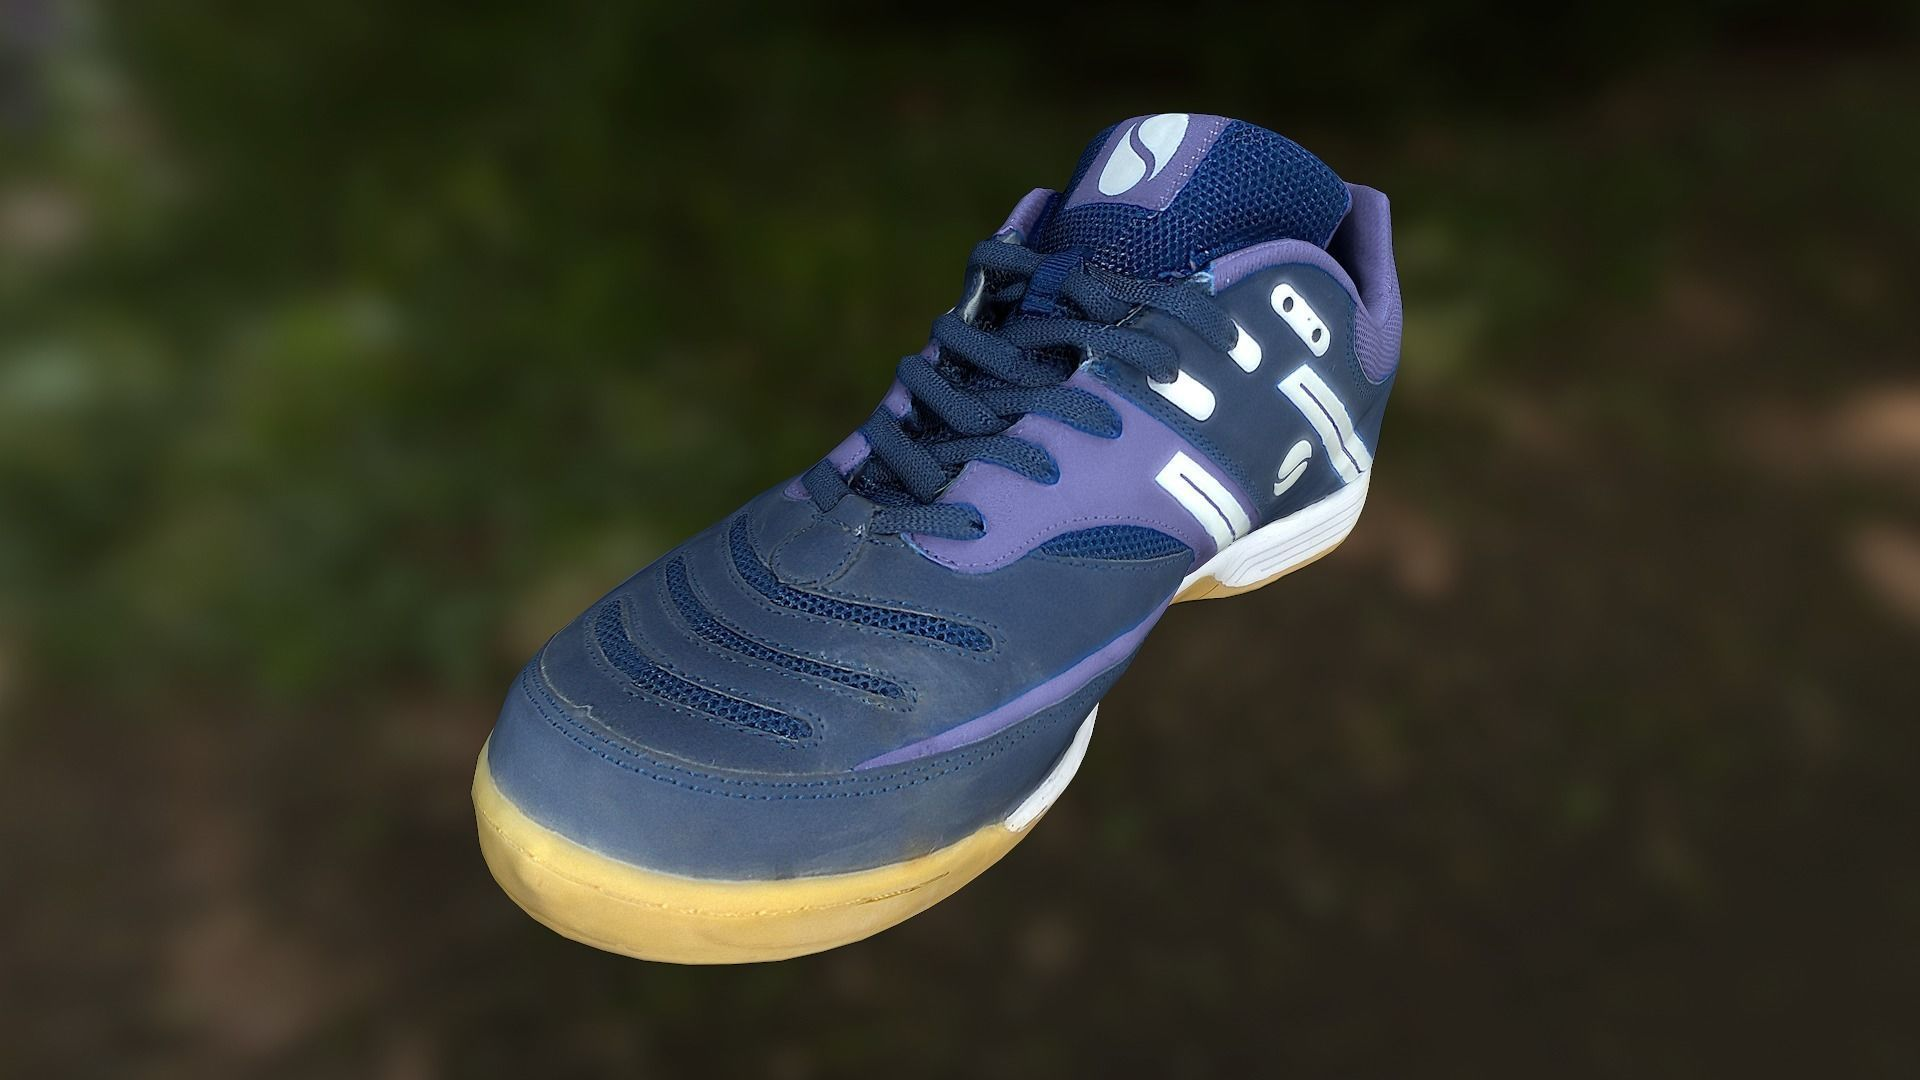 Sport shoe low poly 3D model